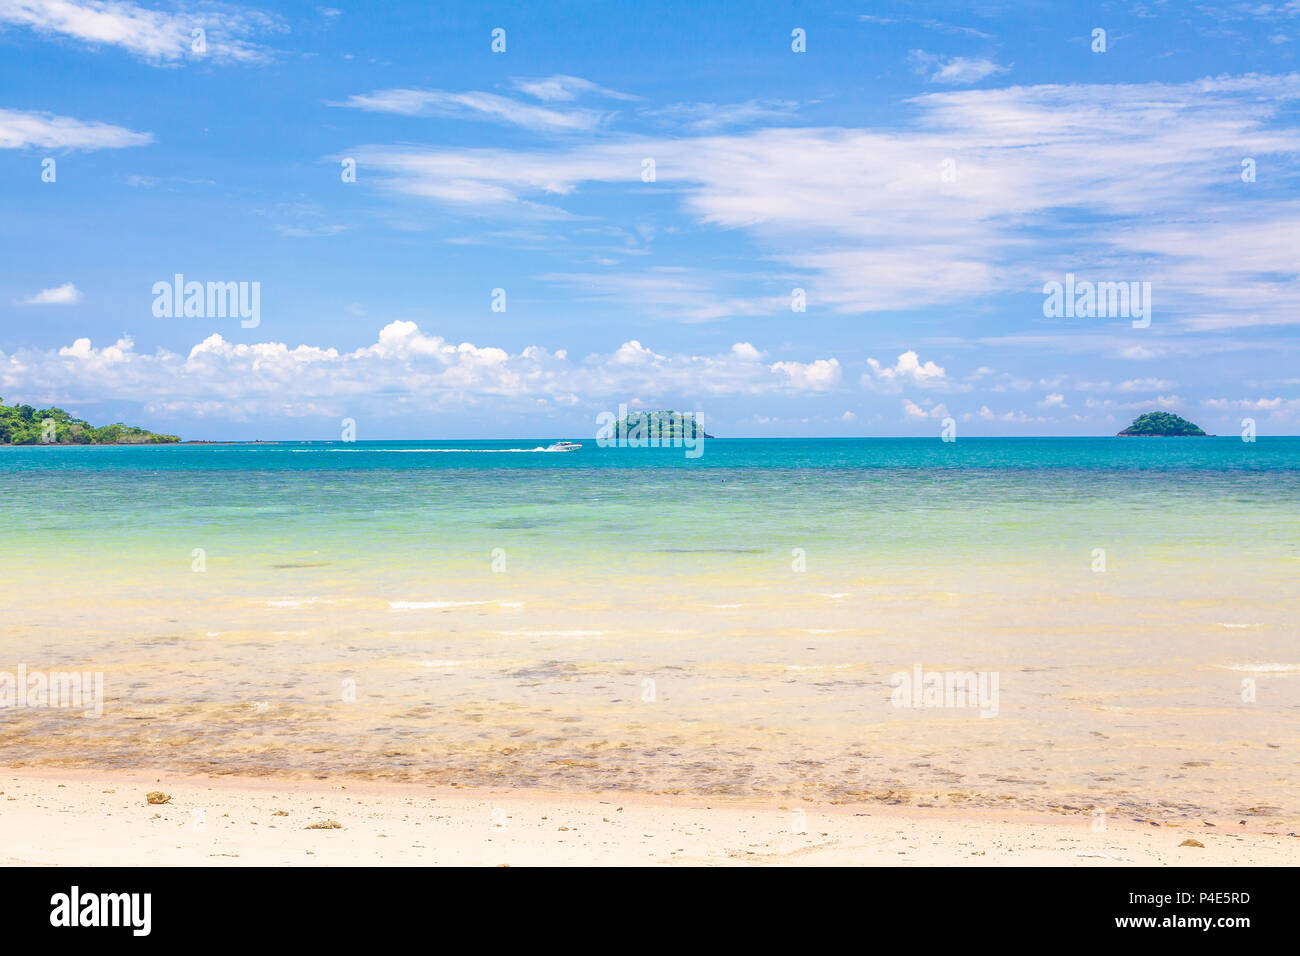 The azure waves of the Andaman Sea. Chang Island. Thailand. - Stock Image